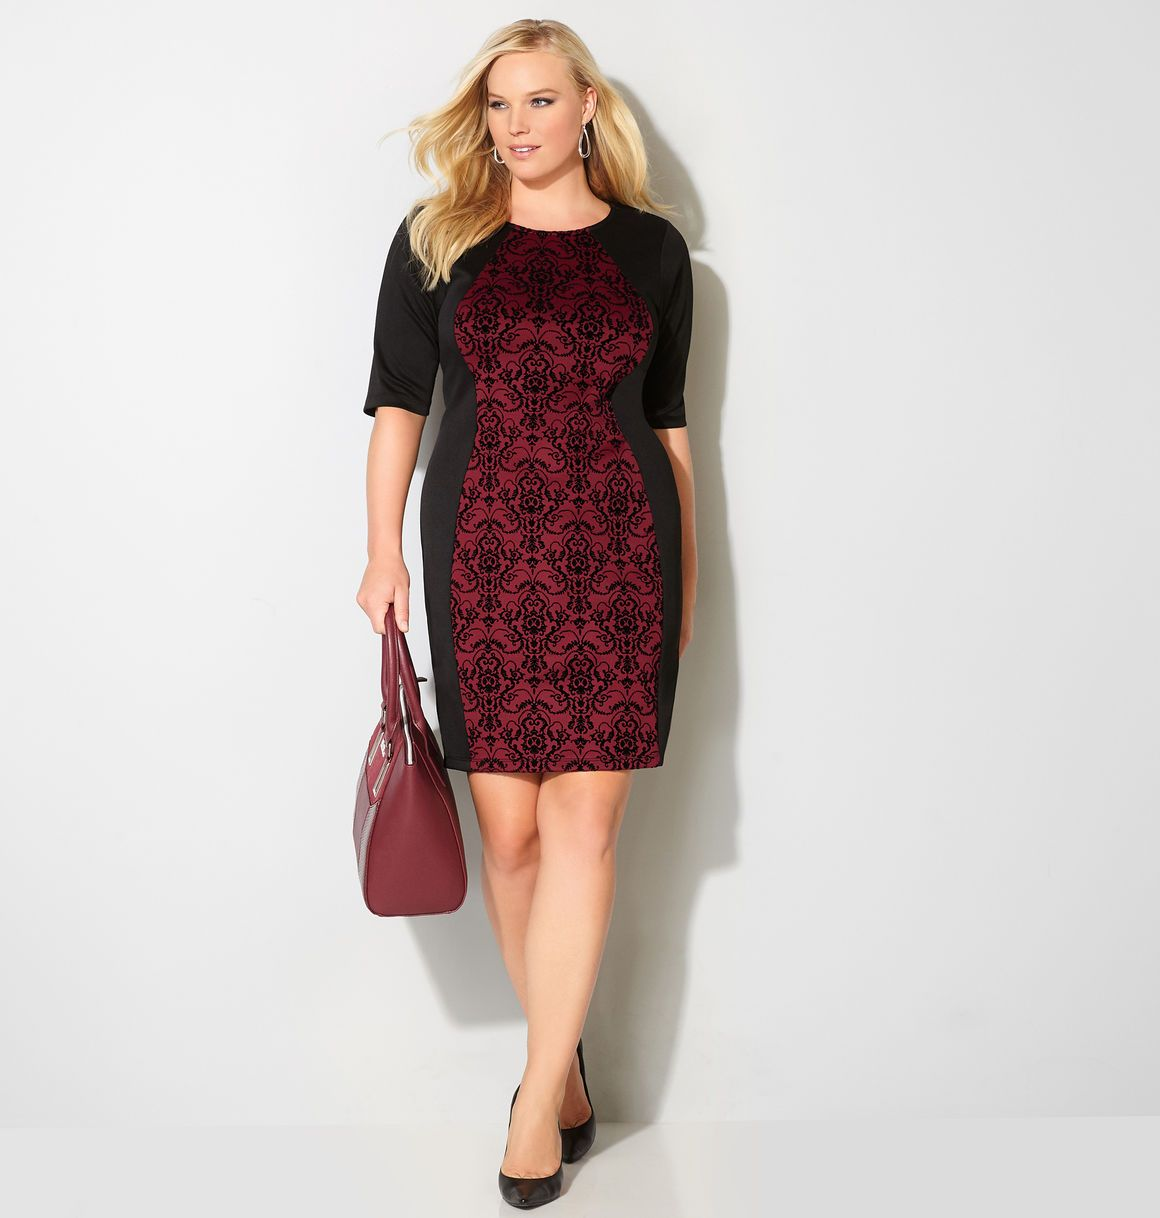 Get A Flattering Dress Shape With The Hourglass Design Of This Plus